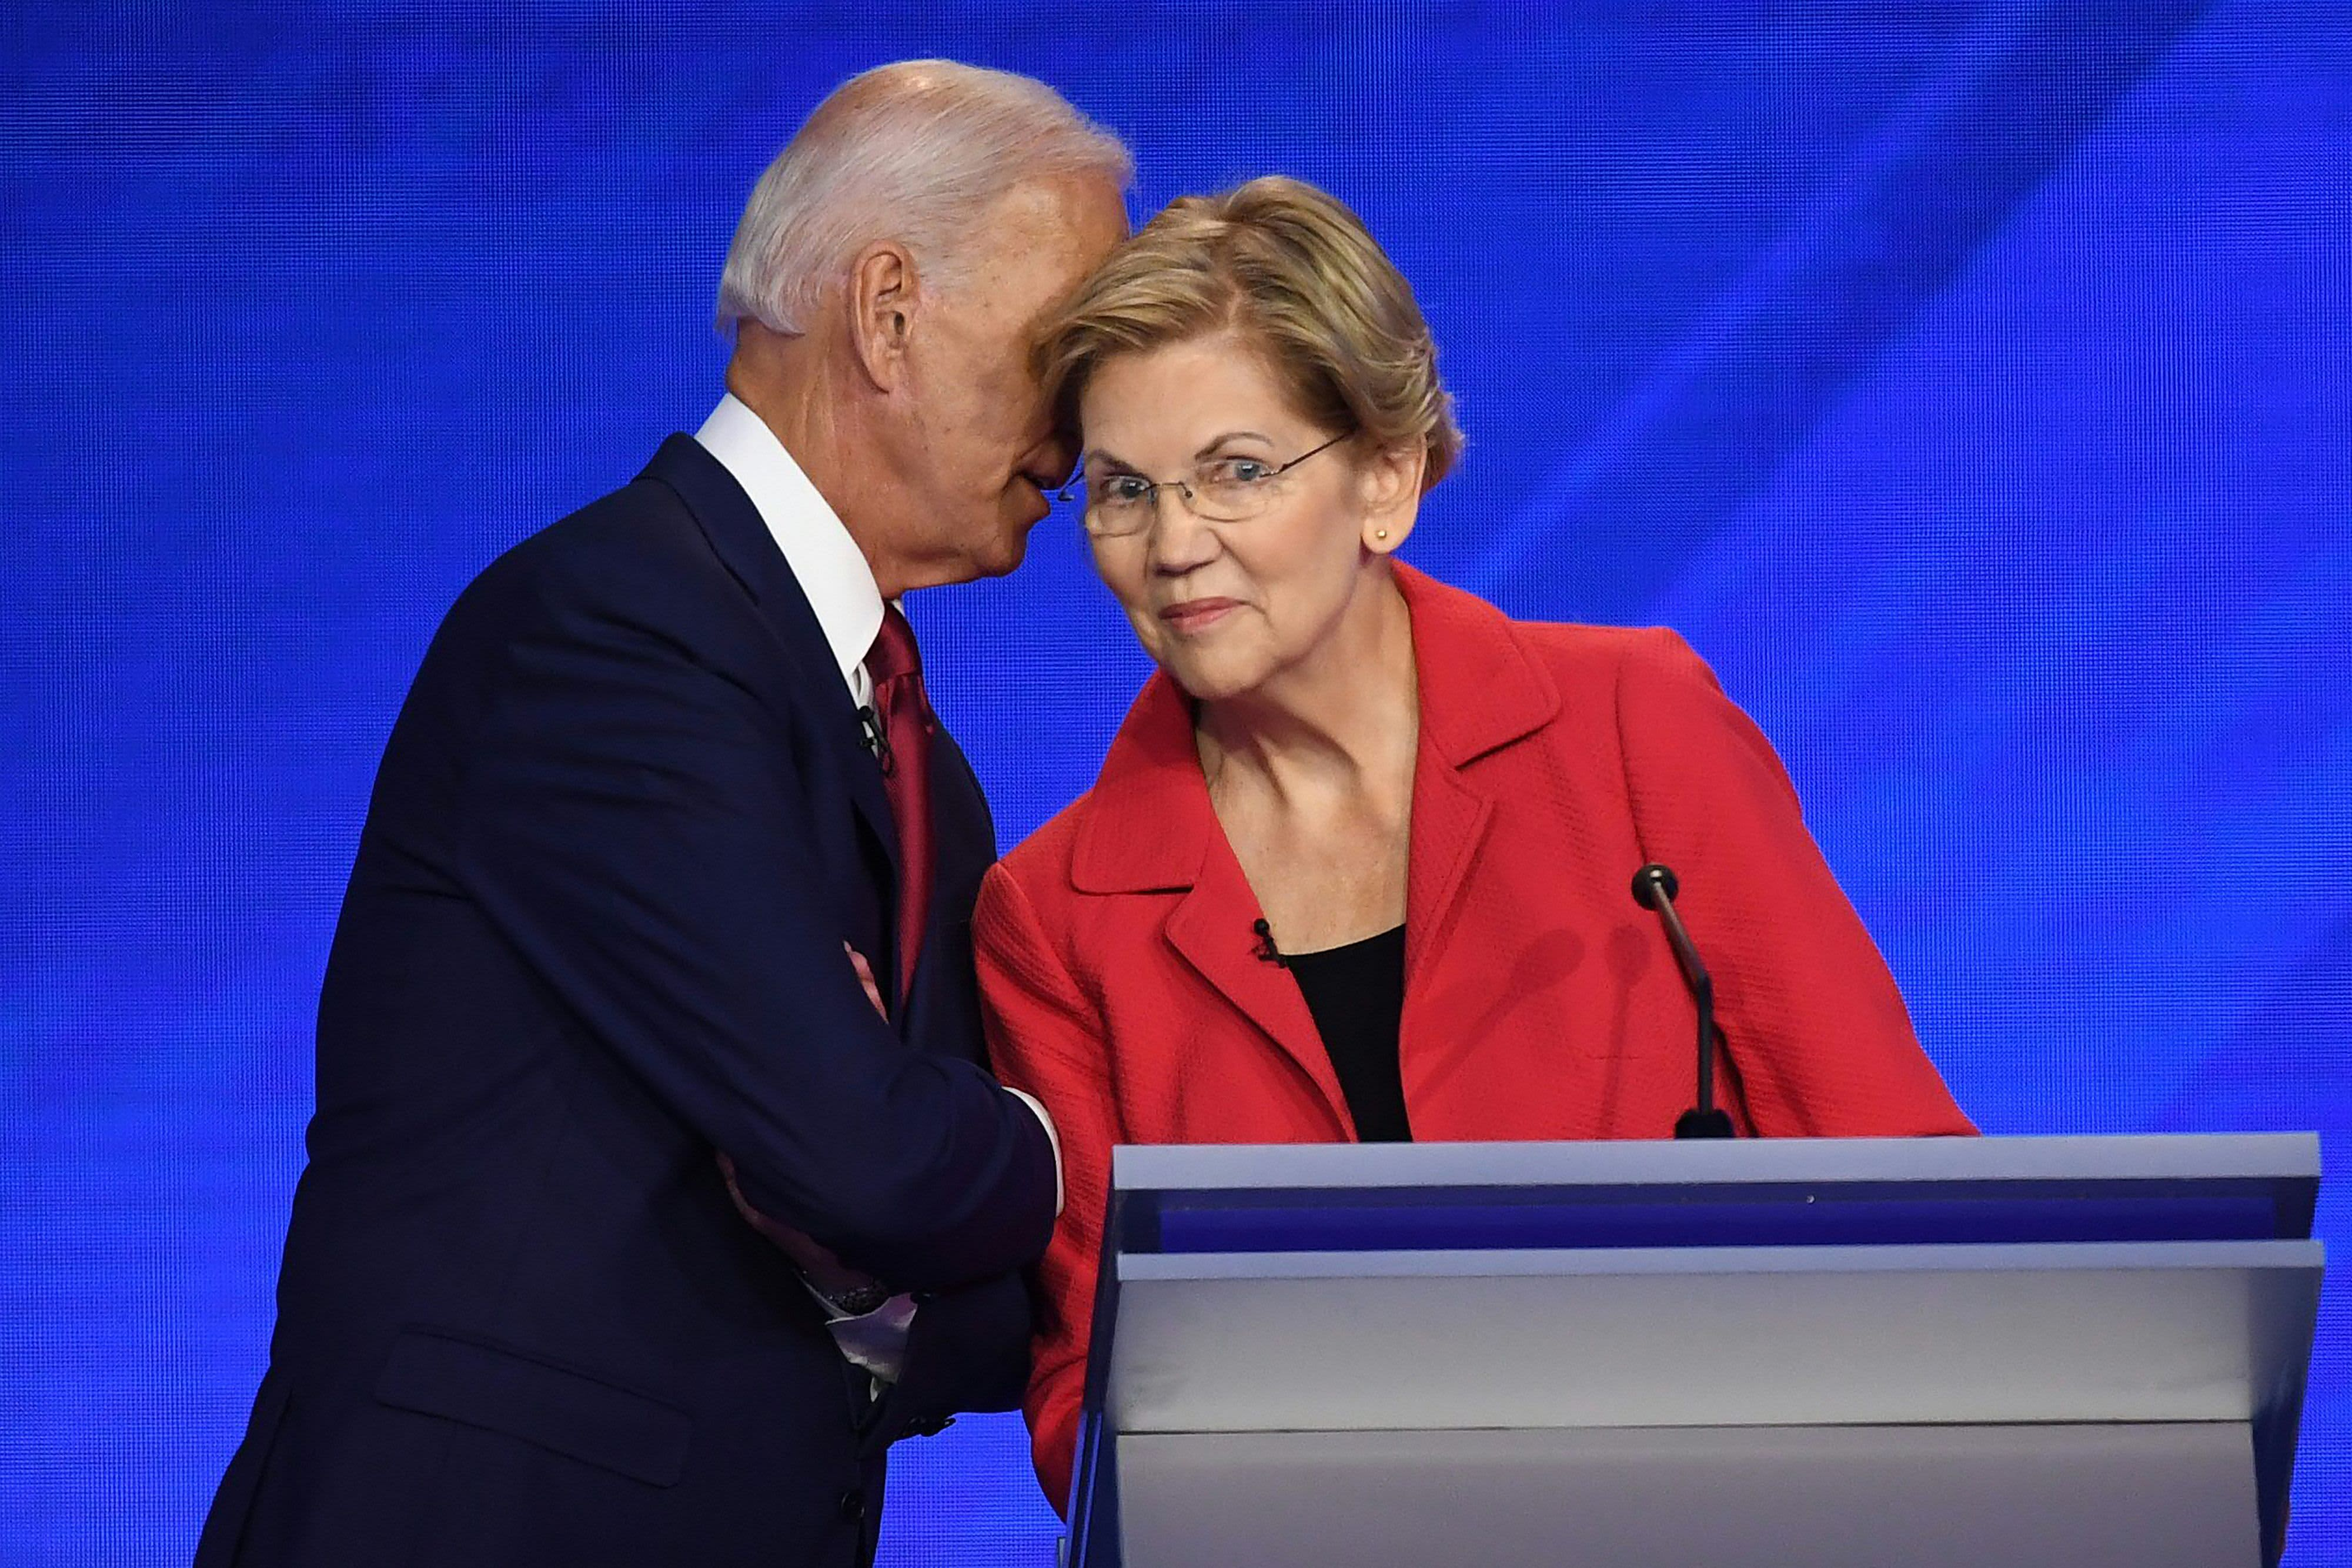 Wall Street Democratic donors warn the party: We'll sit out, or back Trump, if you nominate Elizabeth Warren